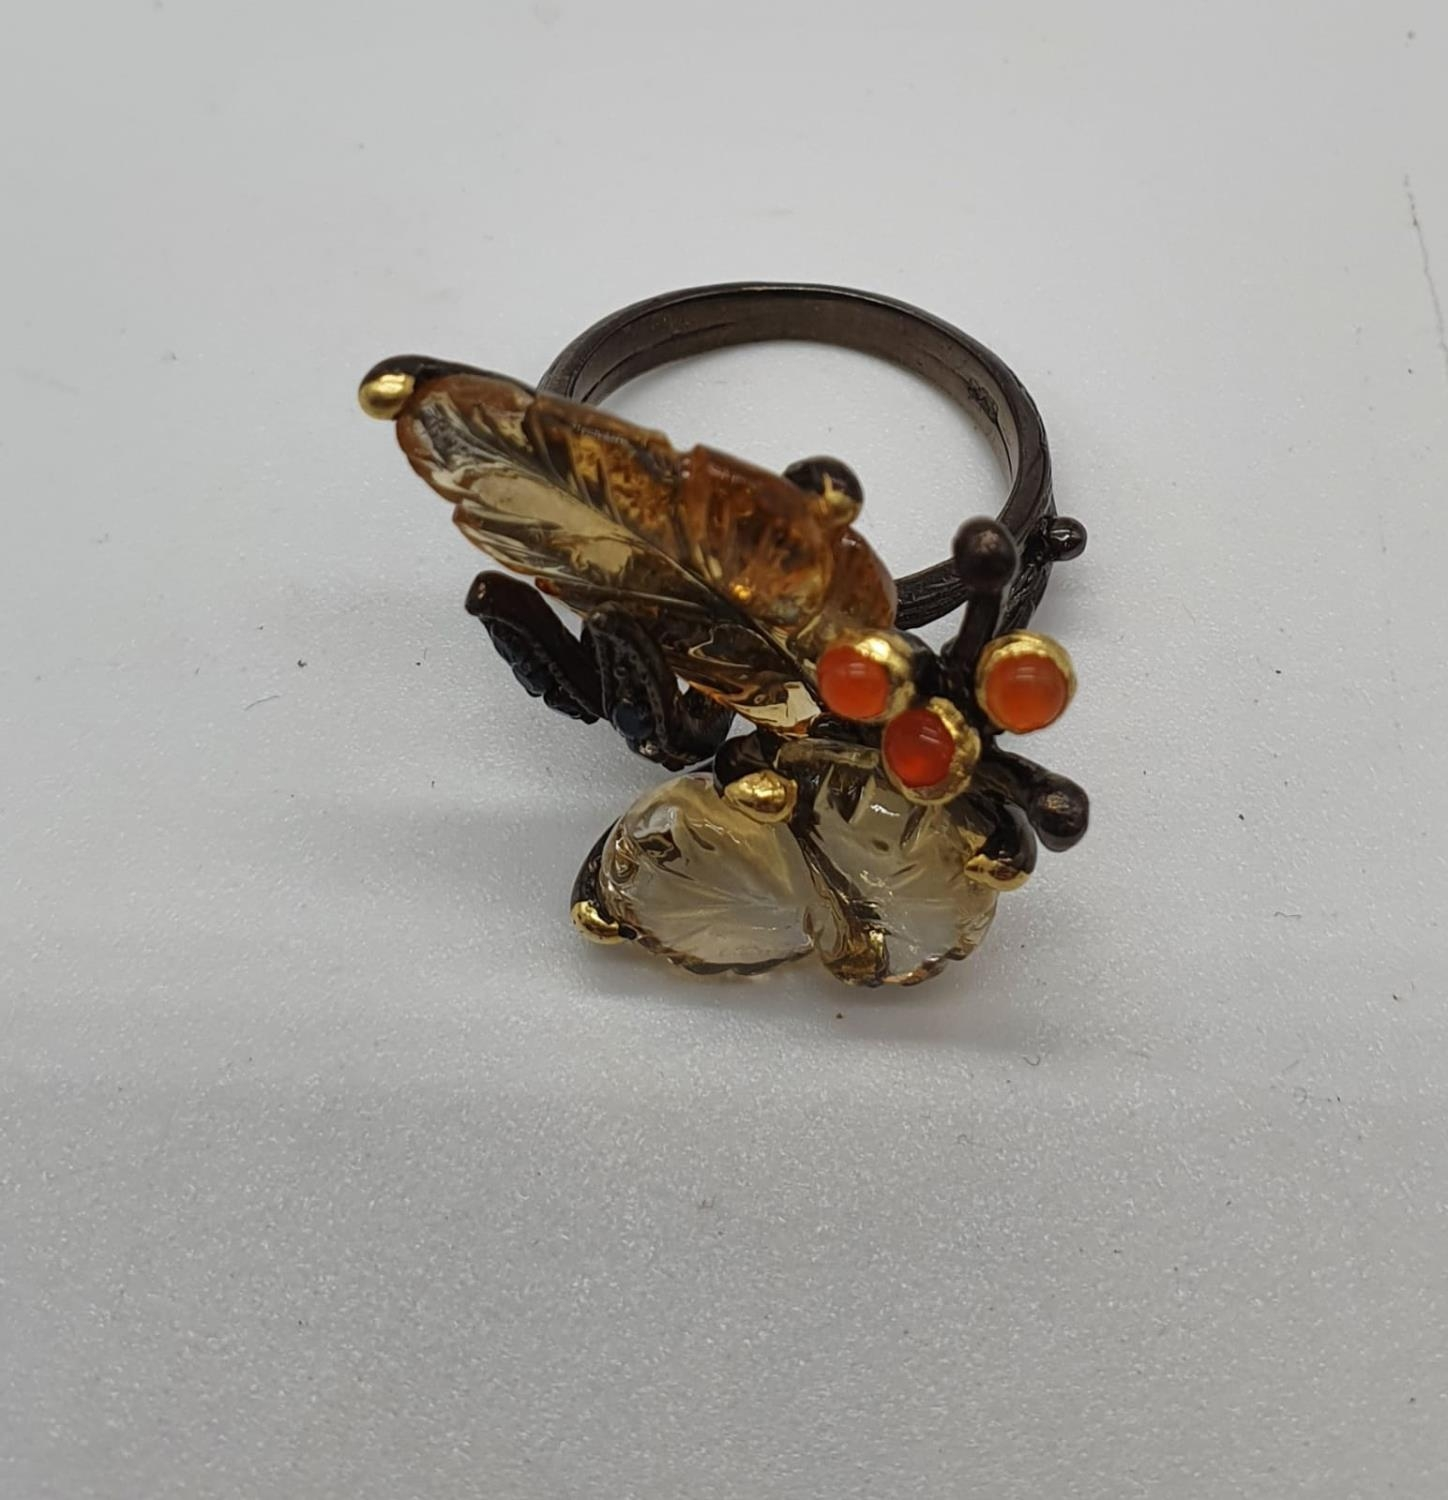 A unique Edwardian silver (unmarked) ring with carved semiprecious and precious stones (citrine, - Image 4 of 5